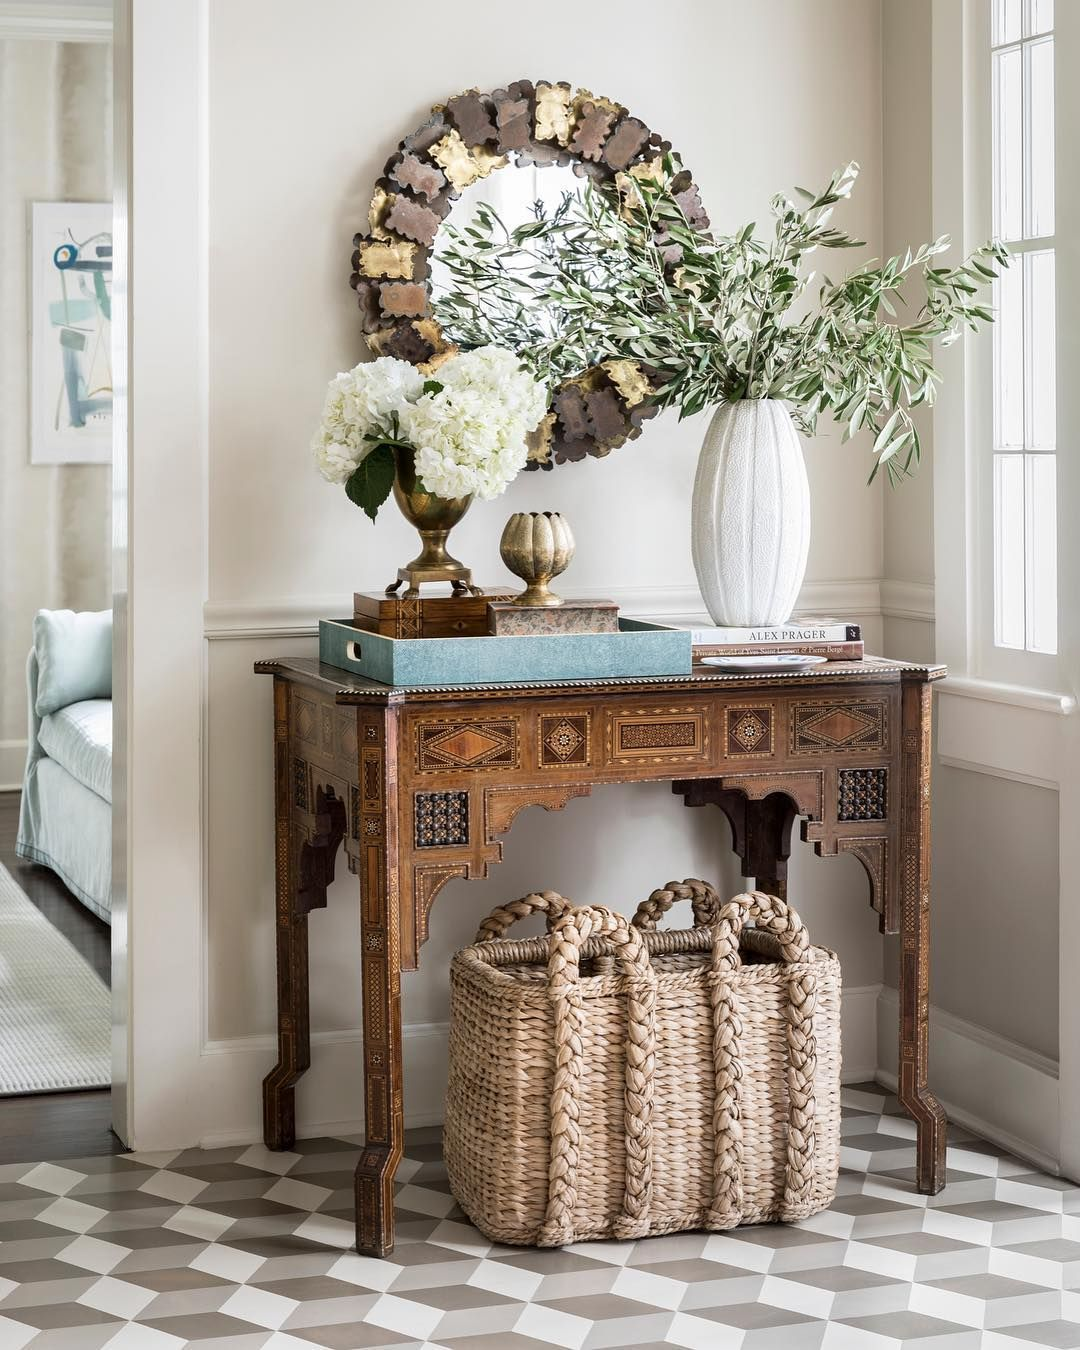 Kevin Isbell On Instagram Rounding Out Our Top 5 For 2018 We Have This Stunning Greenwich Entry Y All Were L Interior Decorating Inspiration Decor Interior